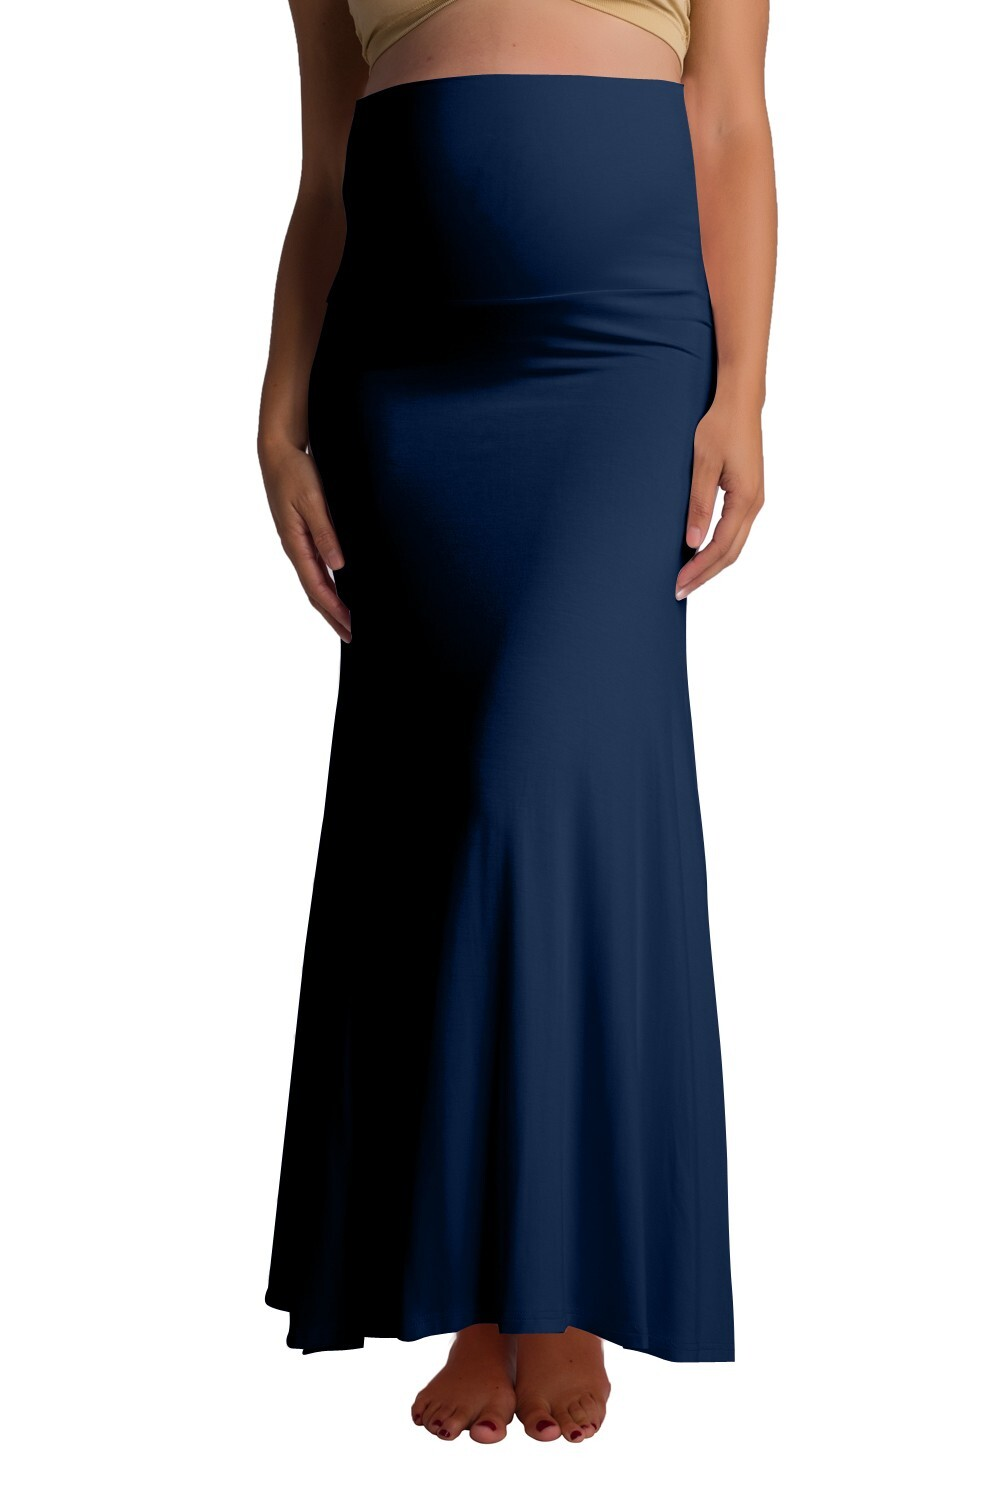 Ultra-Soft Maternity Fold-Over Skirt - Navy - Front